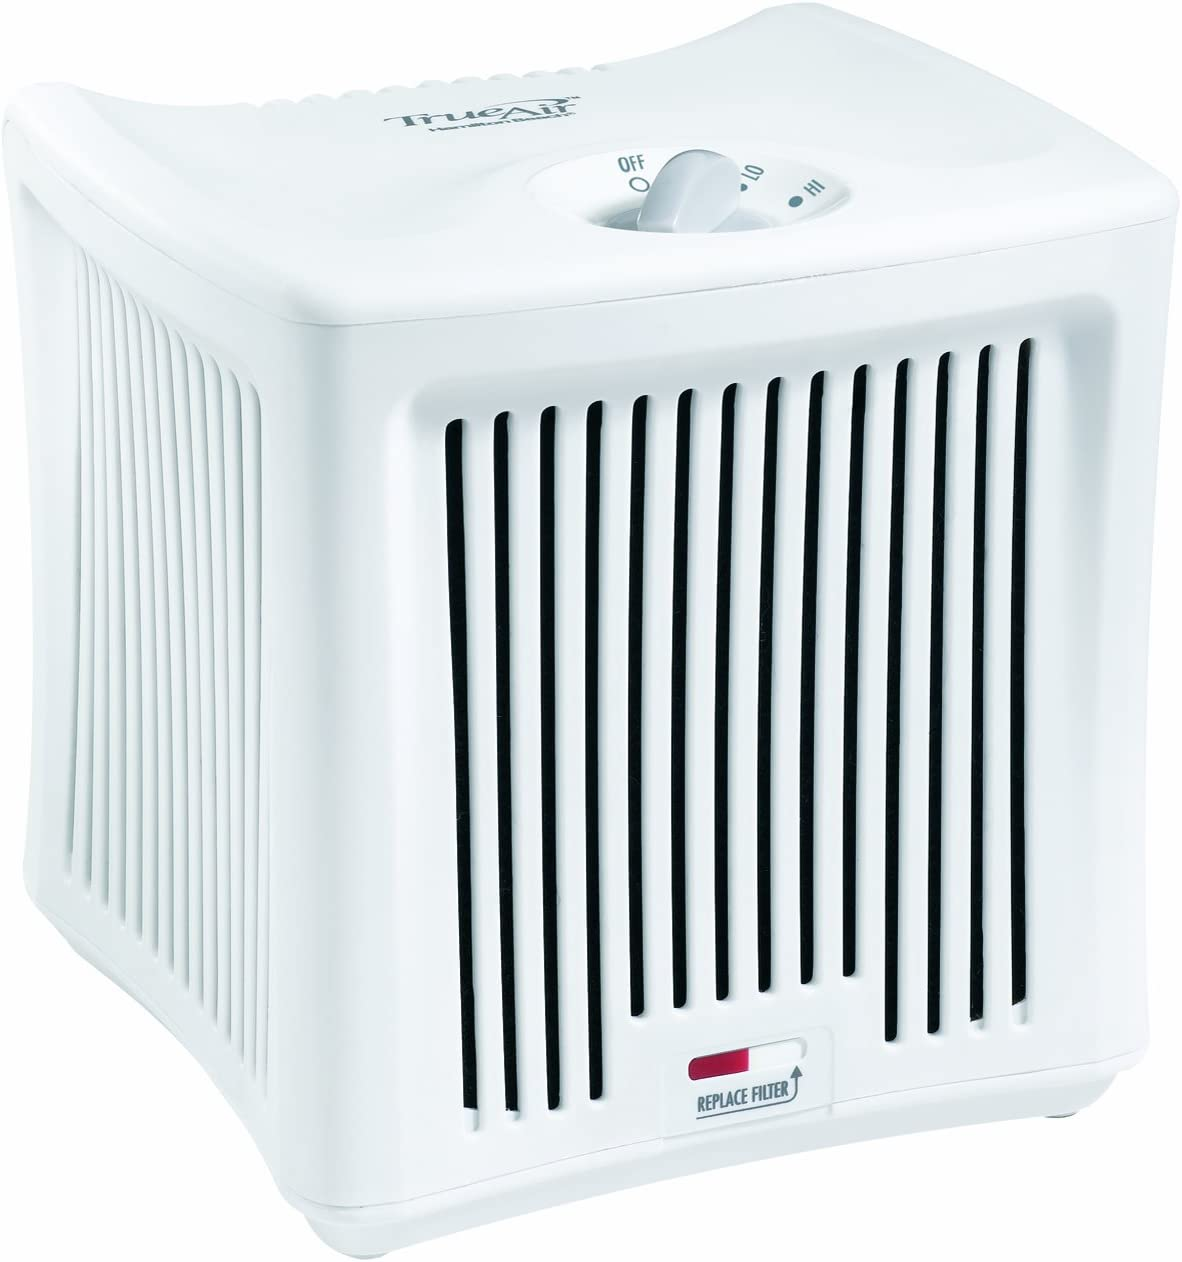 Details about  /Room Odor Eliminator Air Cleaner Purifier Deodorizer Fresh Smoke Smell Filters